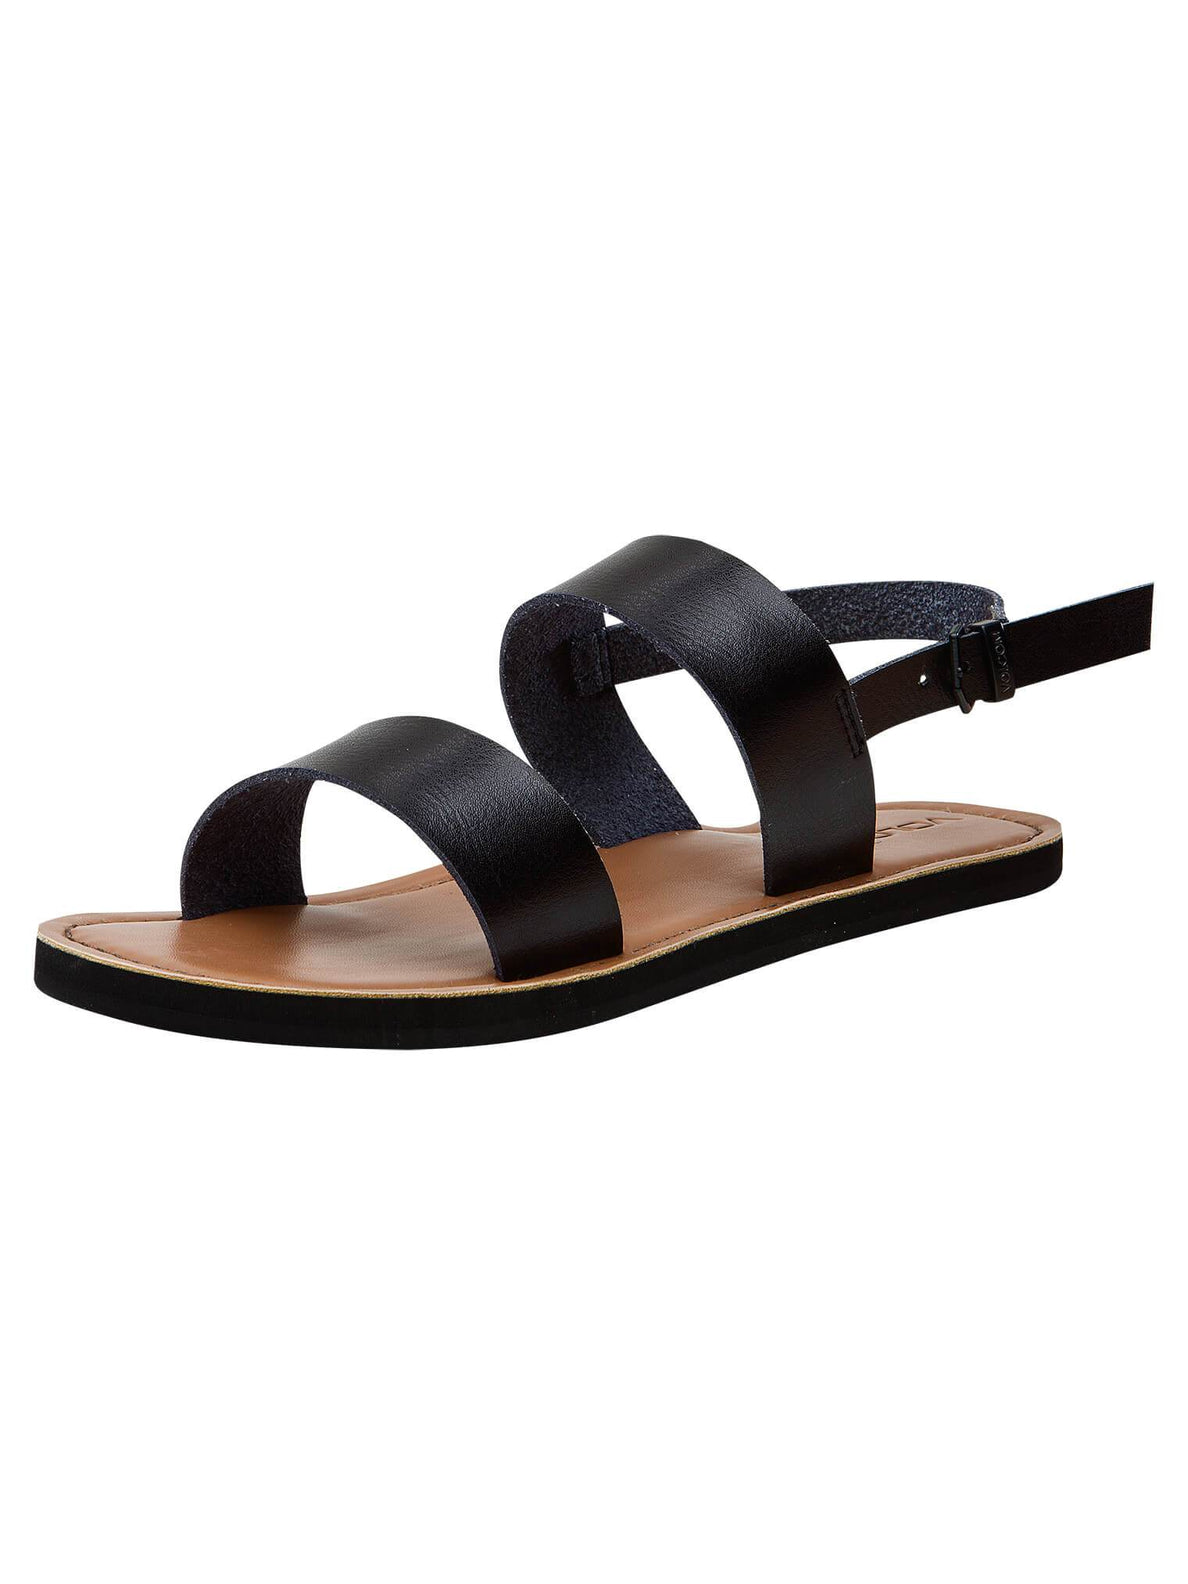 Stone Slide Sandals In Black, Fifth Alternate View